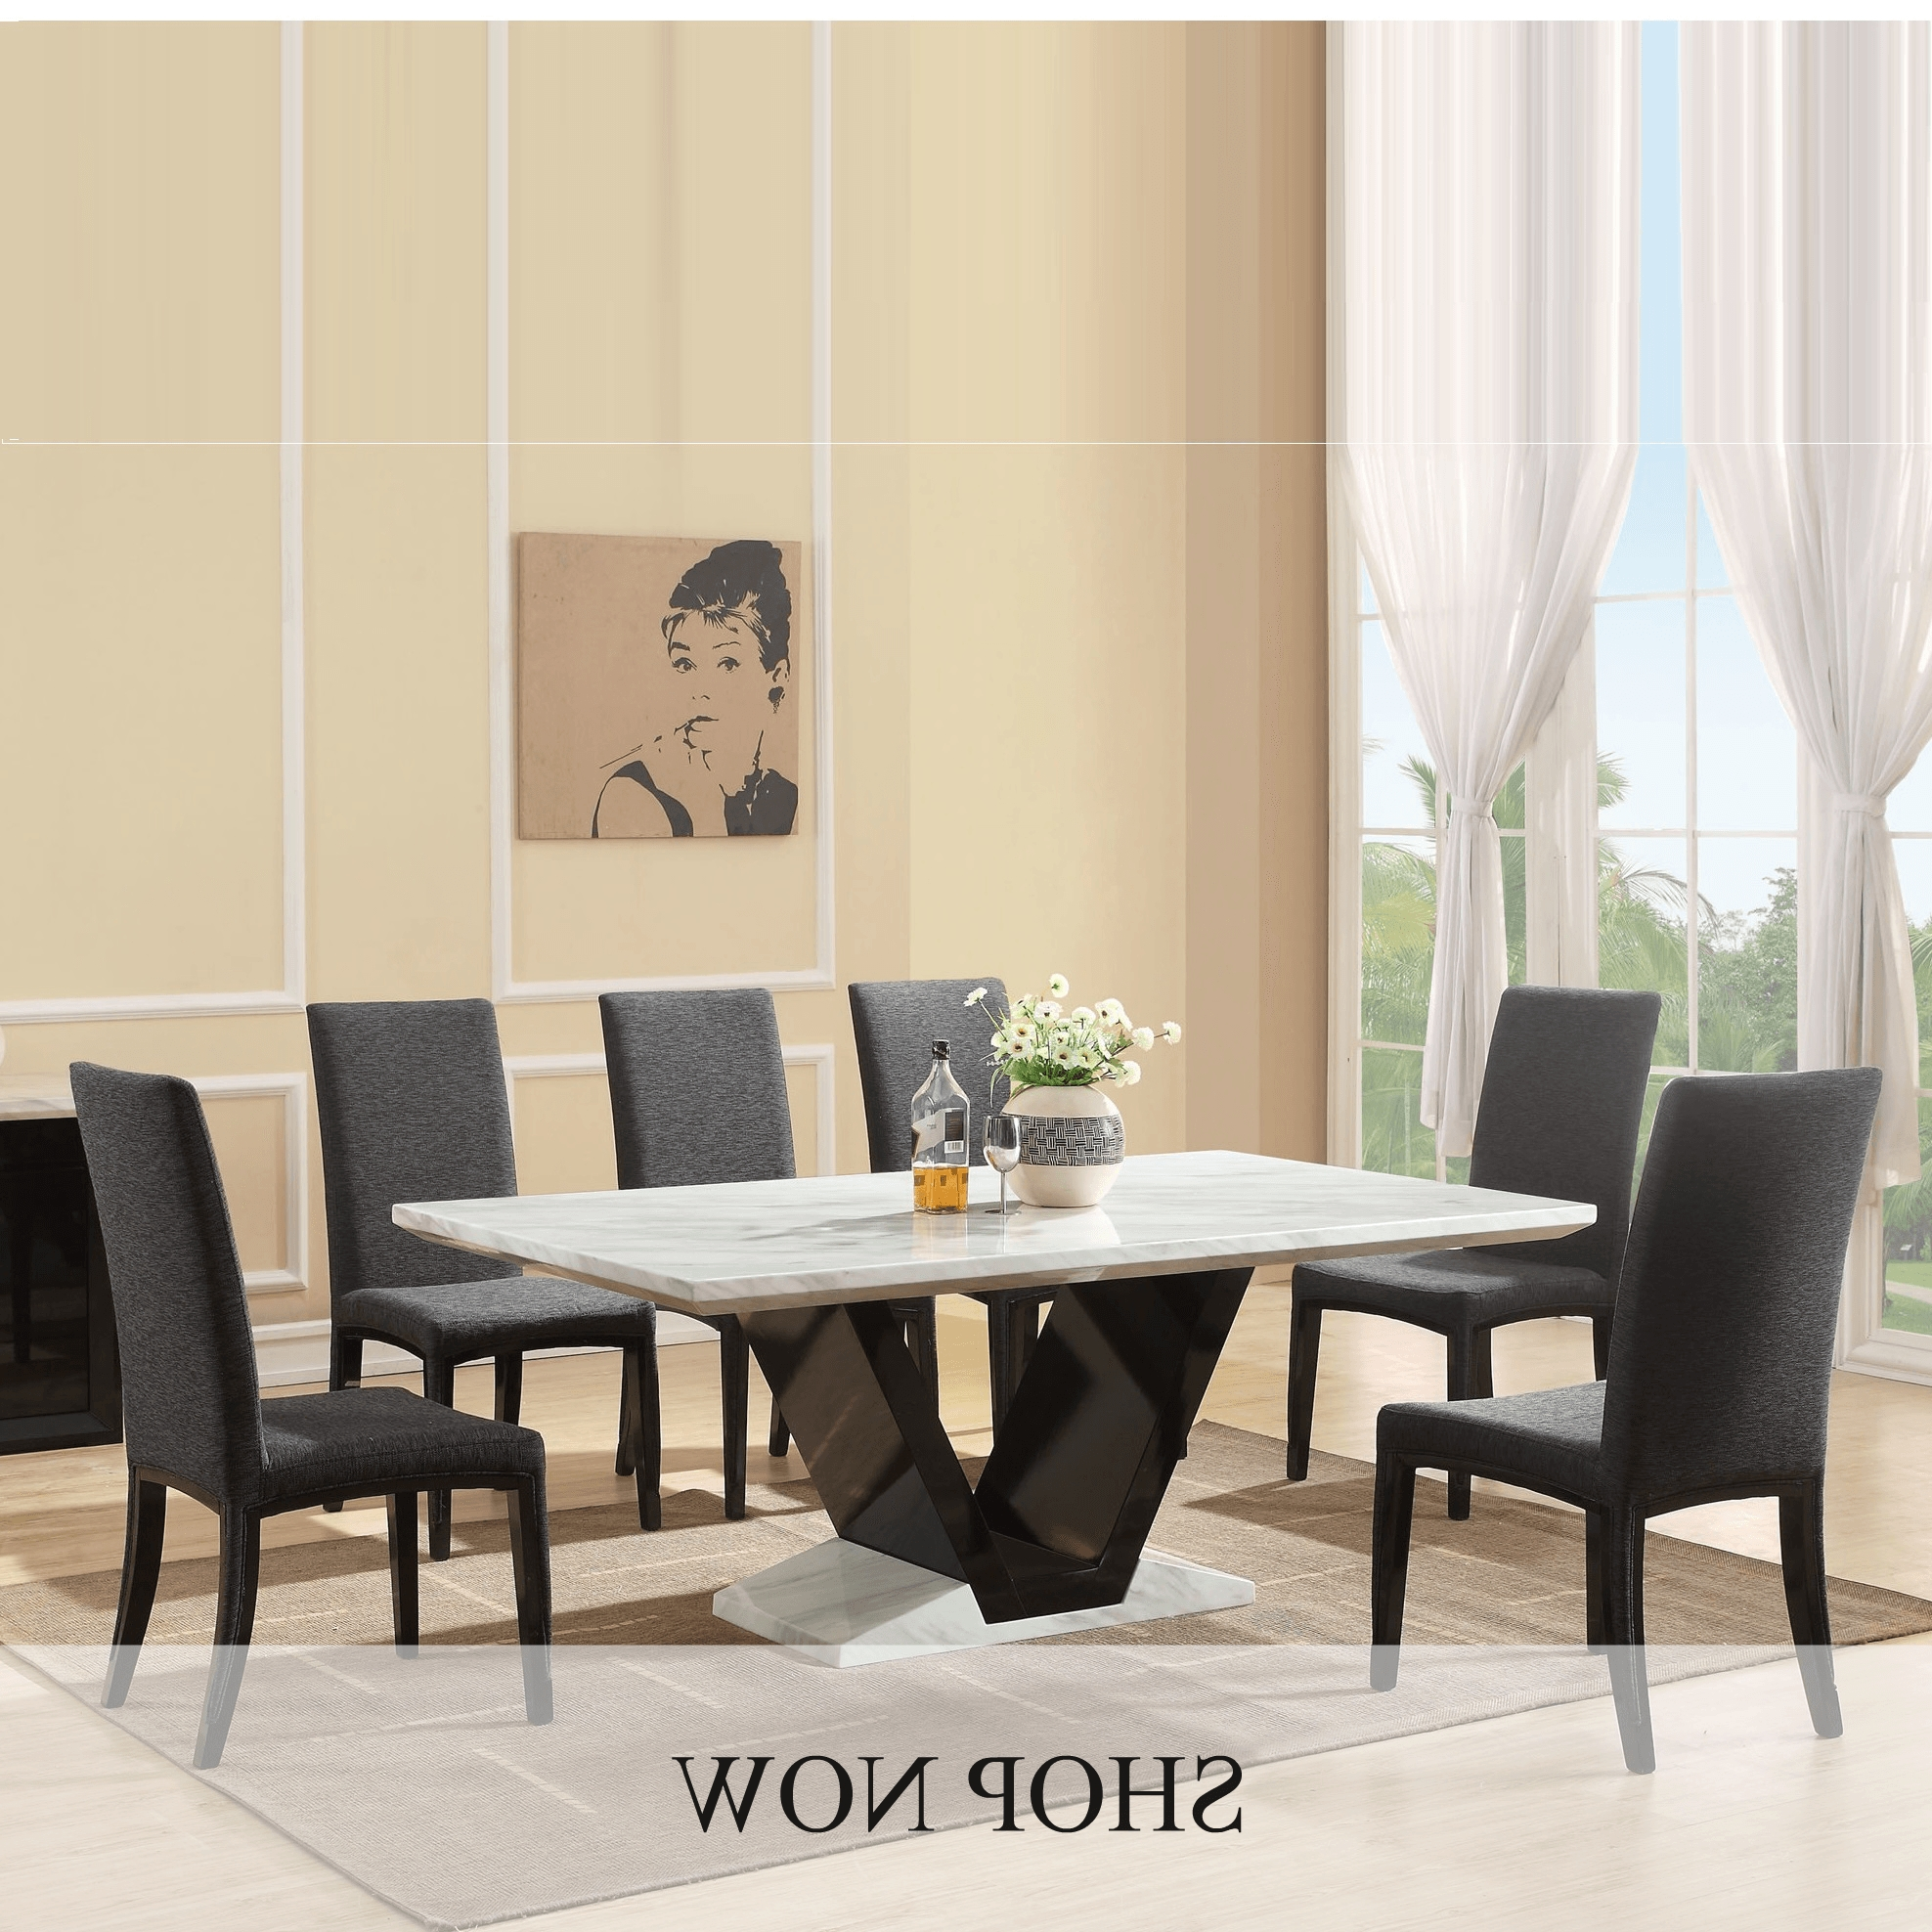 8 Seater White Dining Tables regarding Current Marble Dining Table White - Marble Dining Table Creative Art Ideas